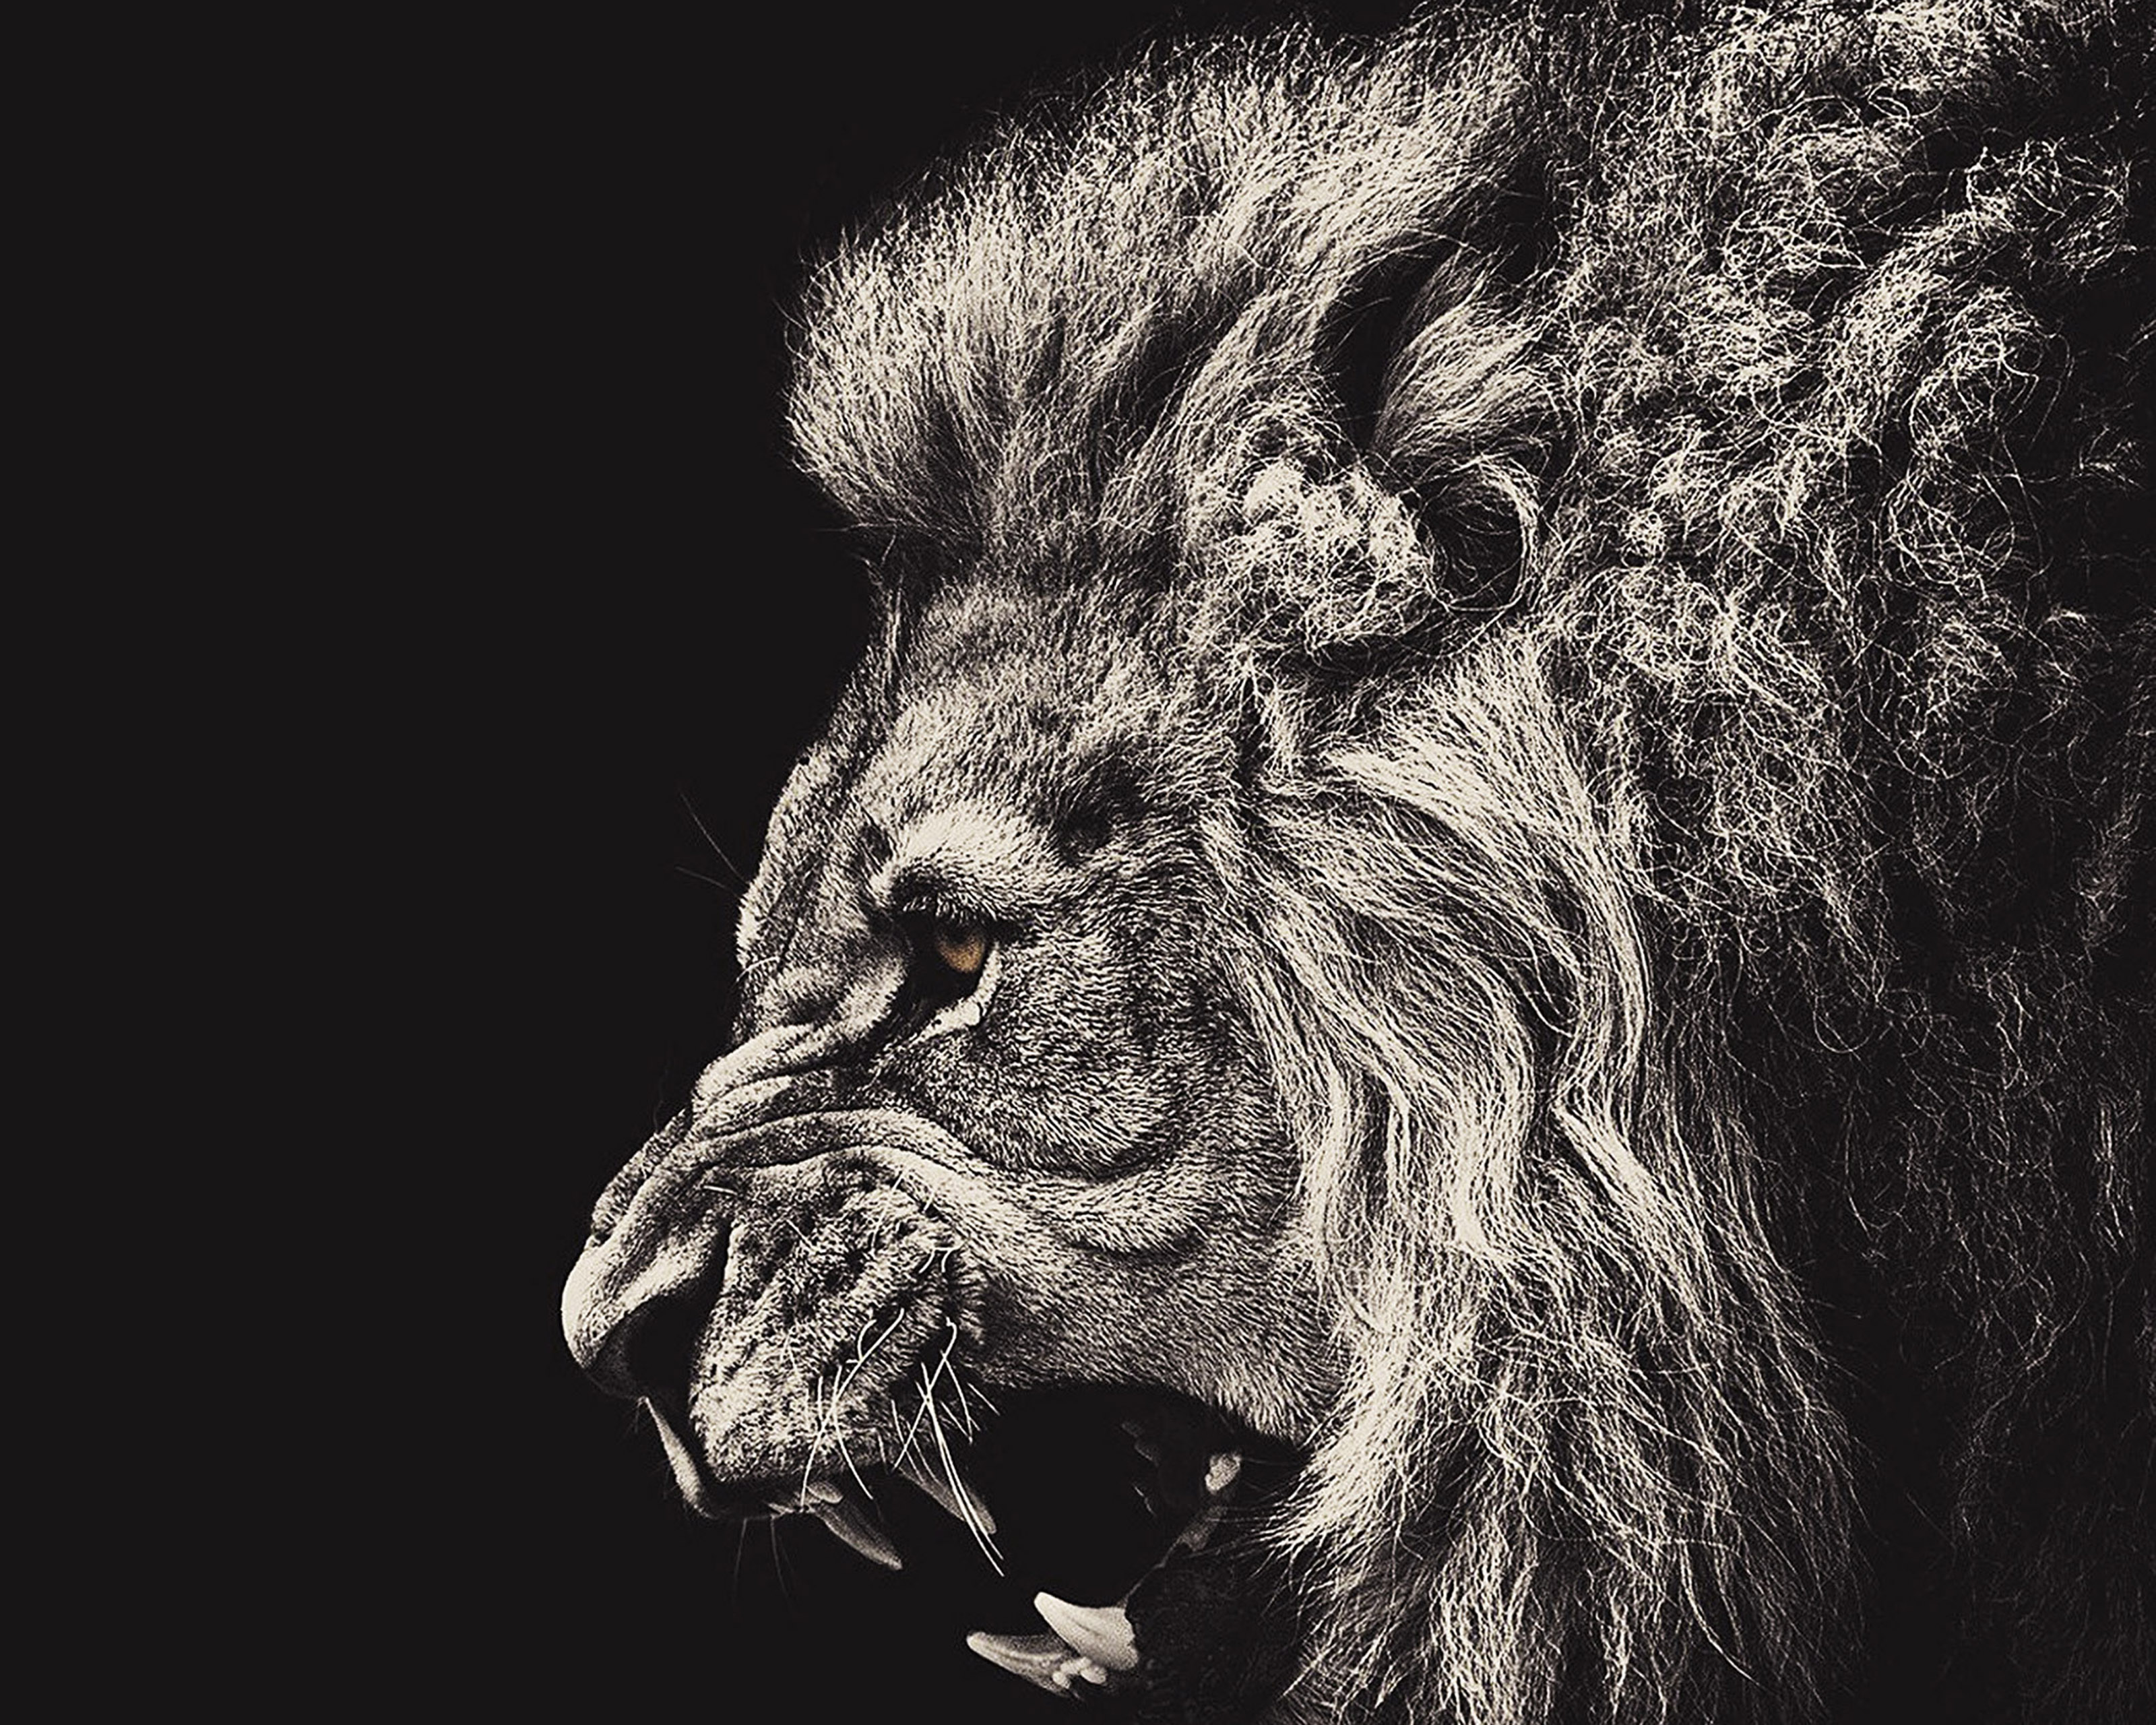 Download Lion Roaring Hd Wallpaper For Desktop Mobile: Download To Your Mobile From PHONEKY